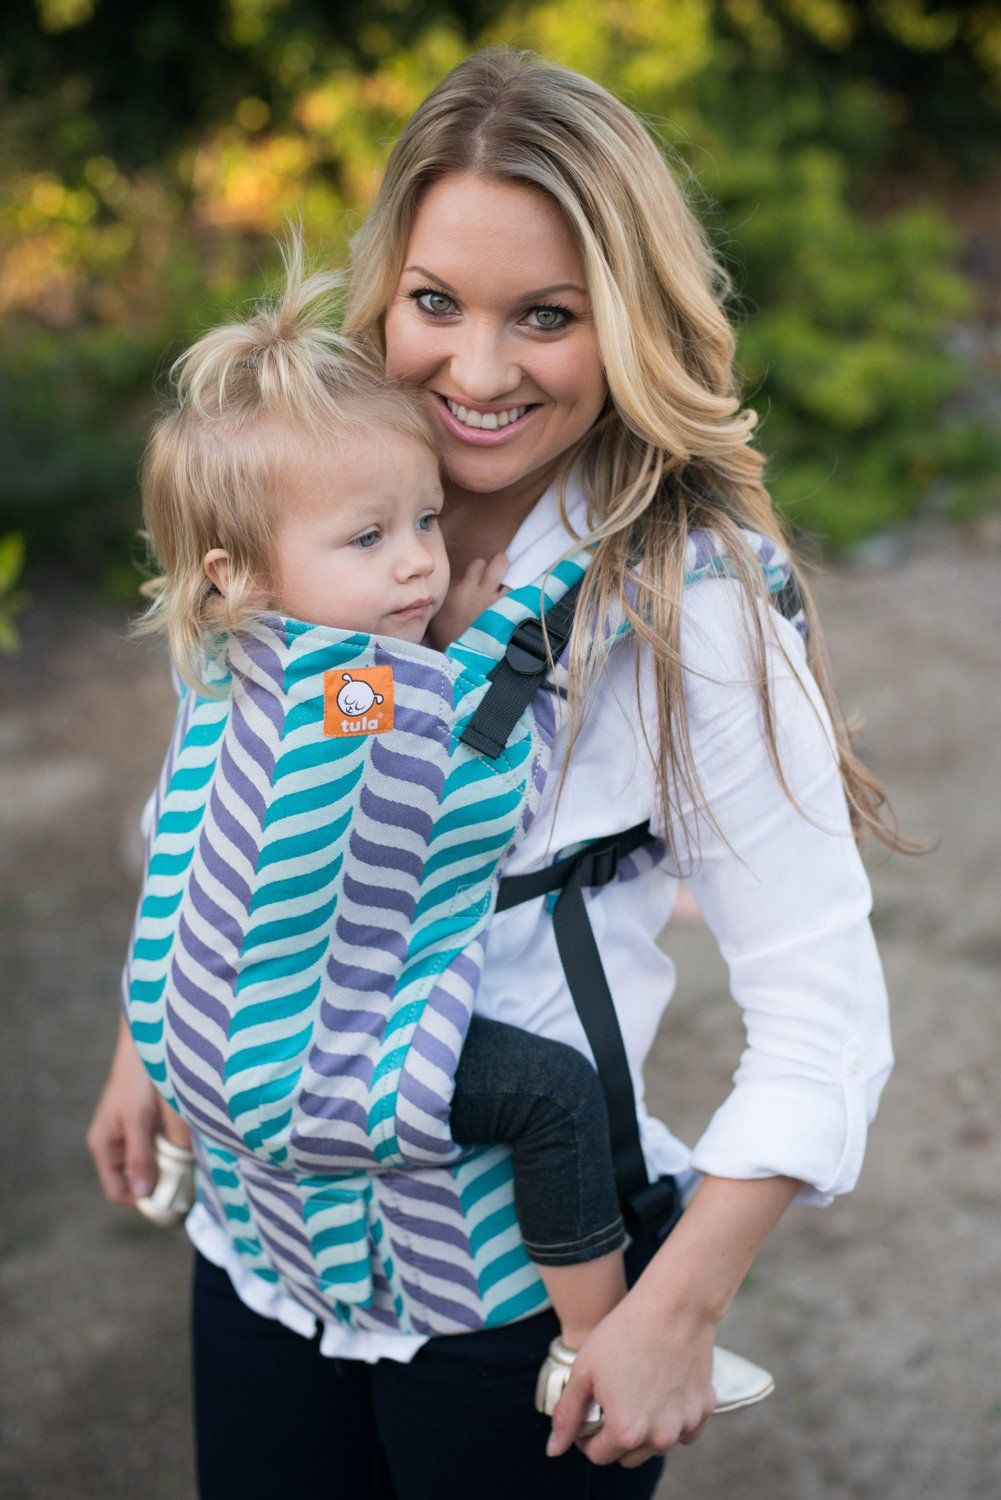 Half Toddler WC Carrier - Migaloo Playful Wrap Conversion | Baby Tula